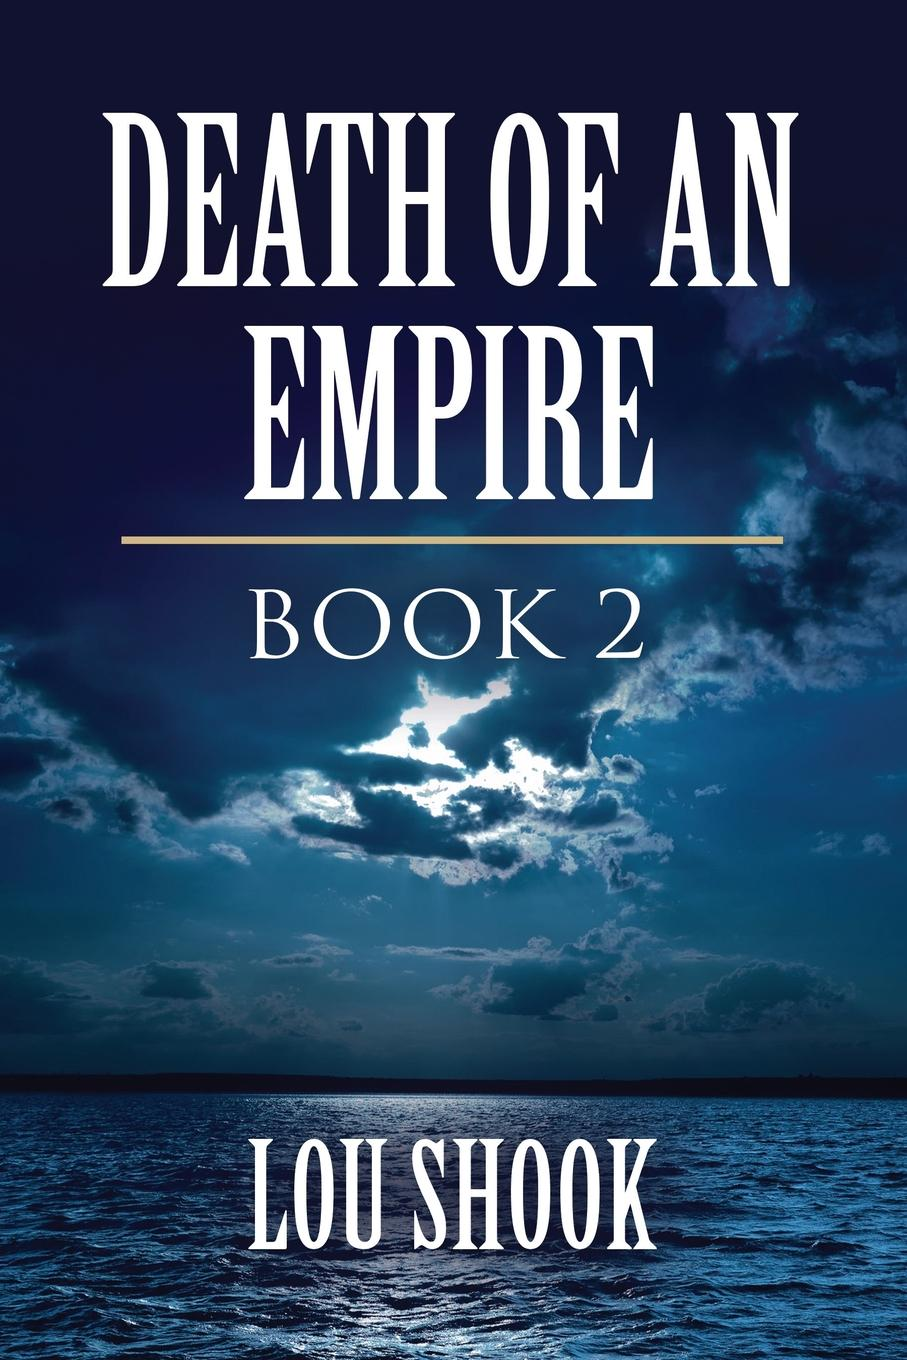 Lou Shook DEATH OF AN EMPIRE. BOOK 2 last ride to carthage